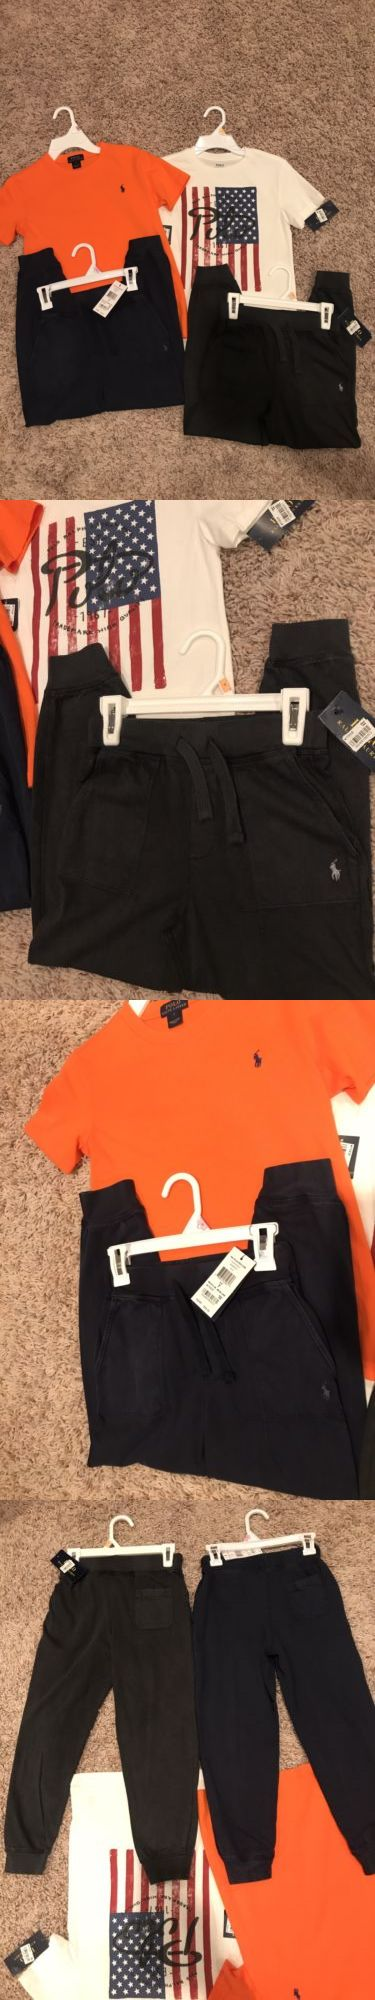 Mixed Items and Lots 15620: Nwt Boys Ralph Lauren Polo Sweatpants And Shirt Lot Size 7 Two Outfits! Nice!! -> BUY IT NOW ONLY: $75 on eBay!